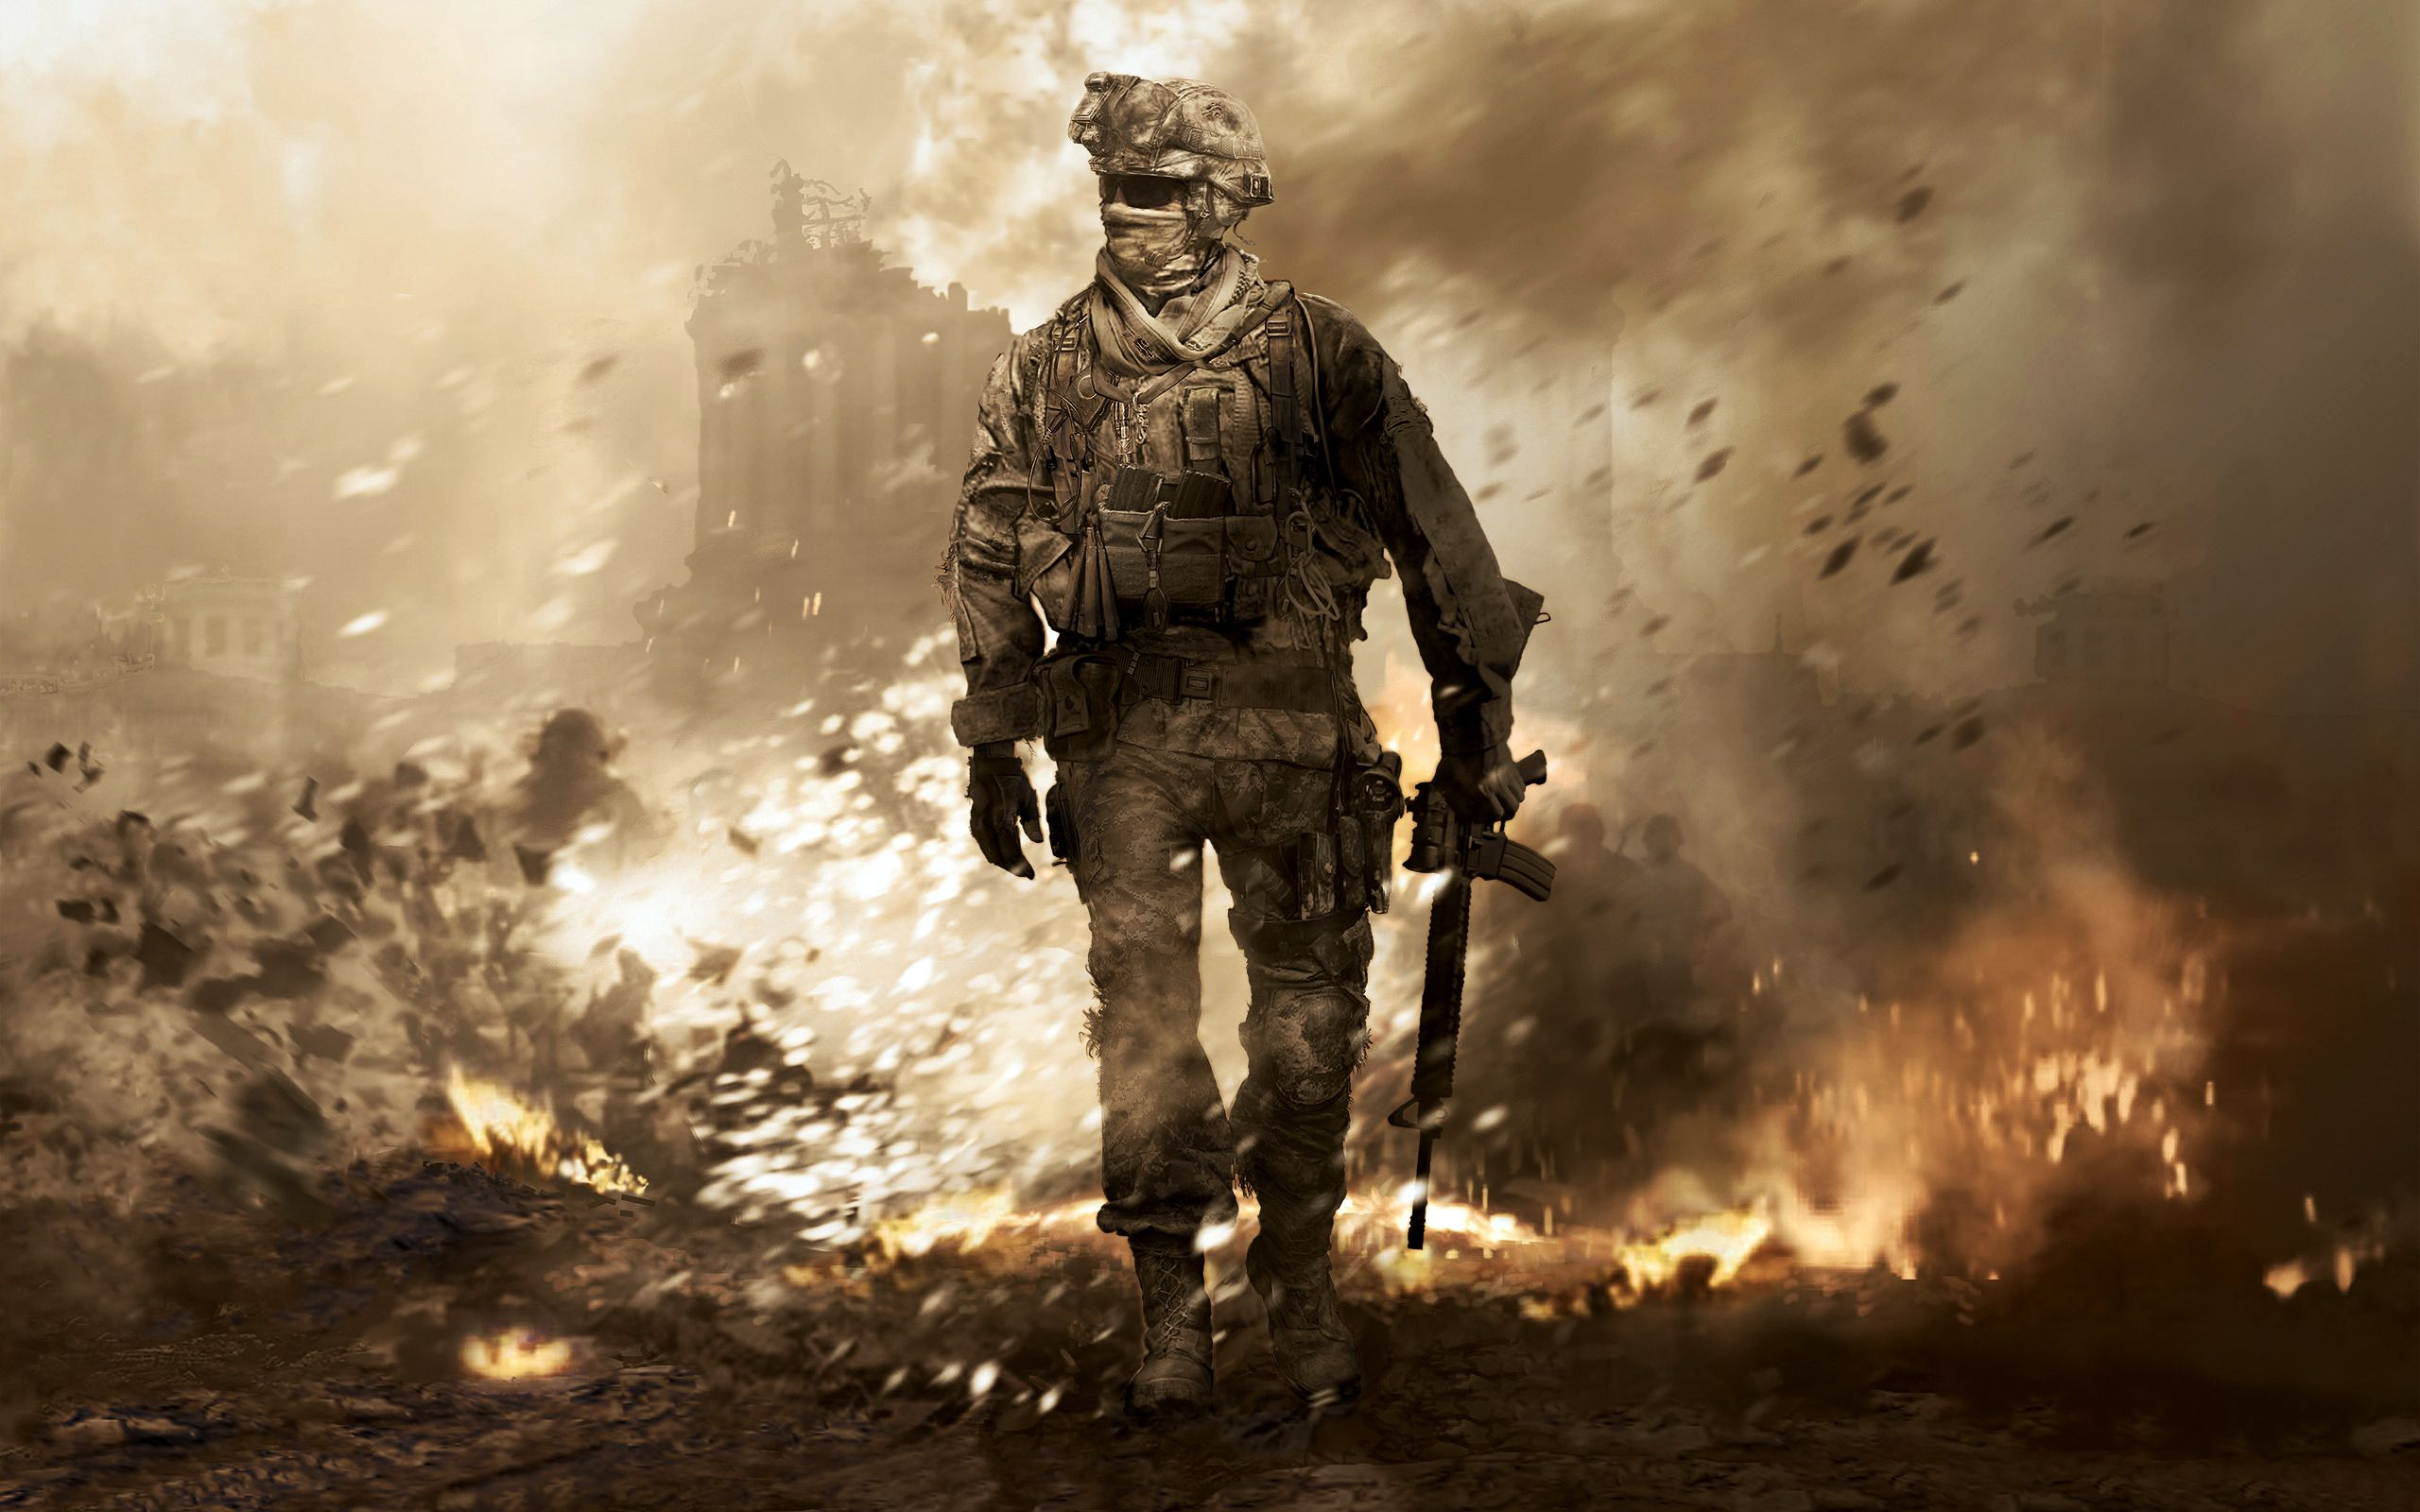 2560x1600 Call of Duty HD Wallpapers 17241 - Baltana